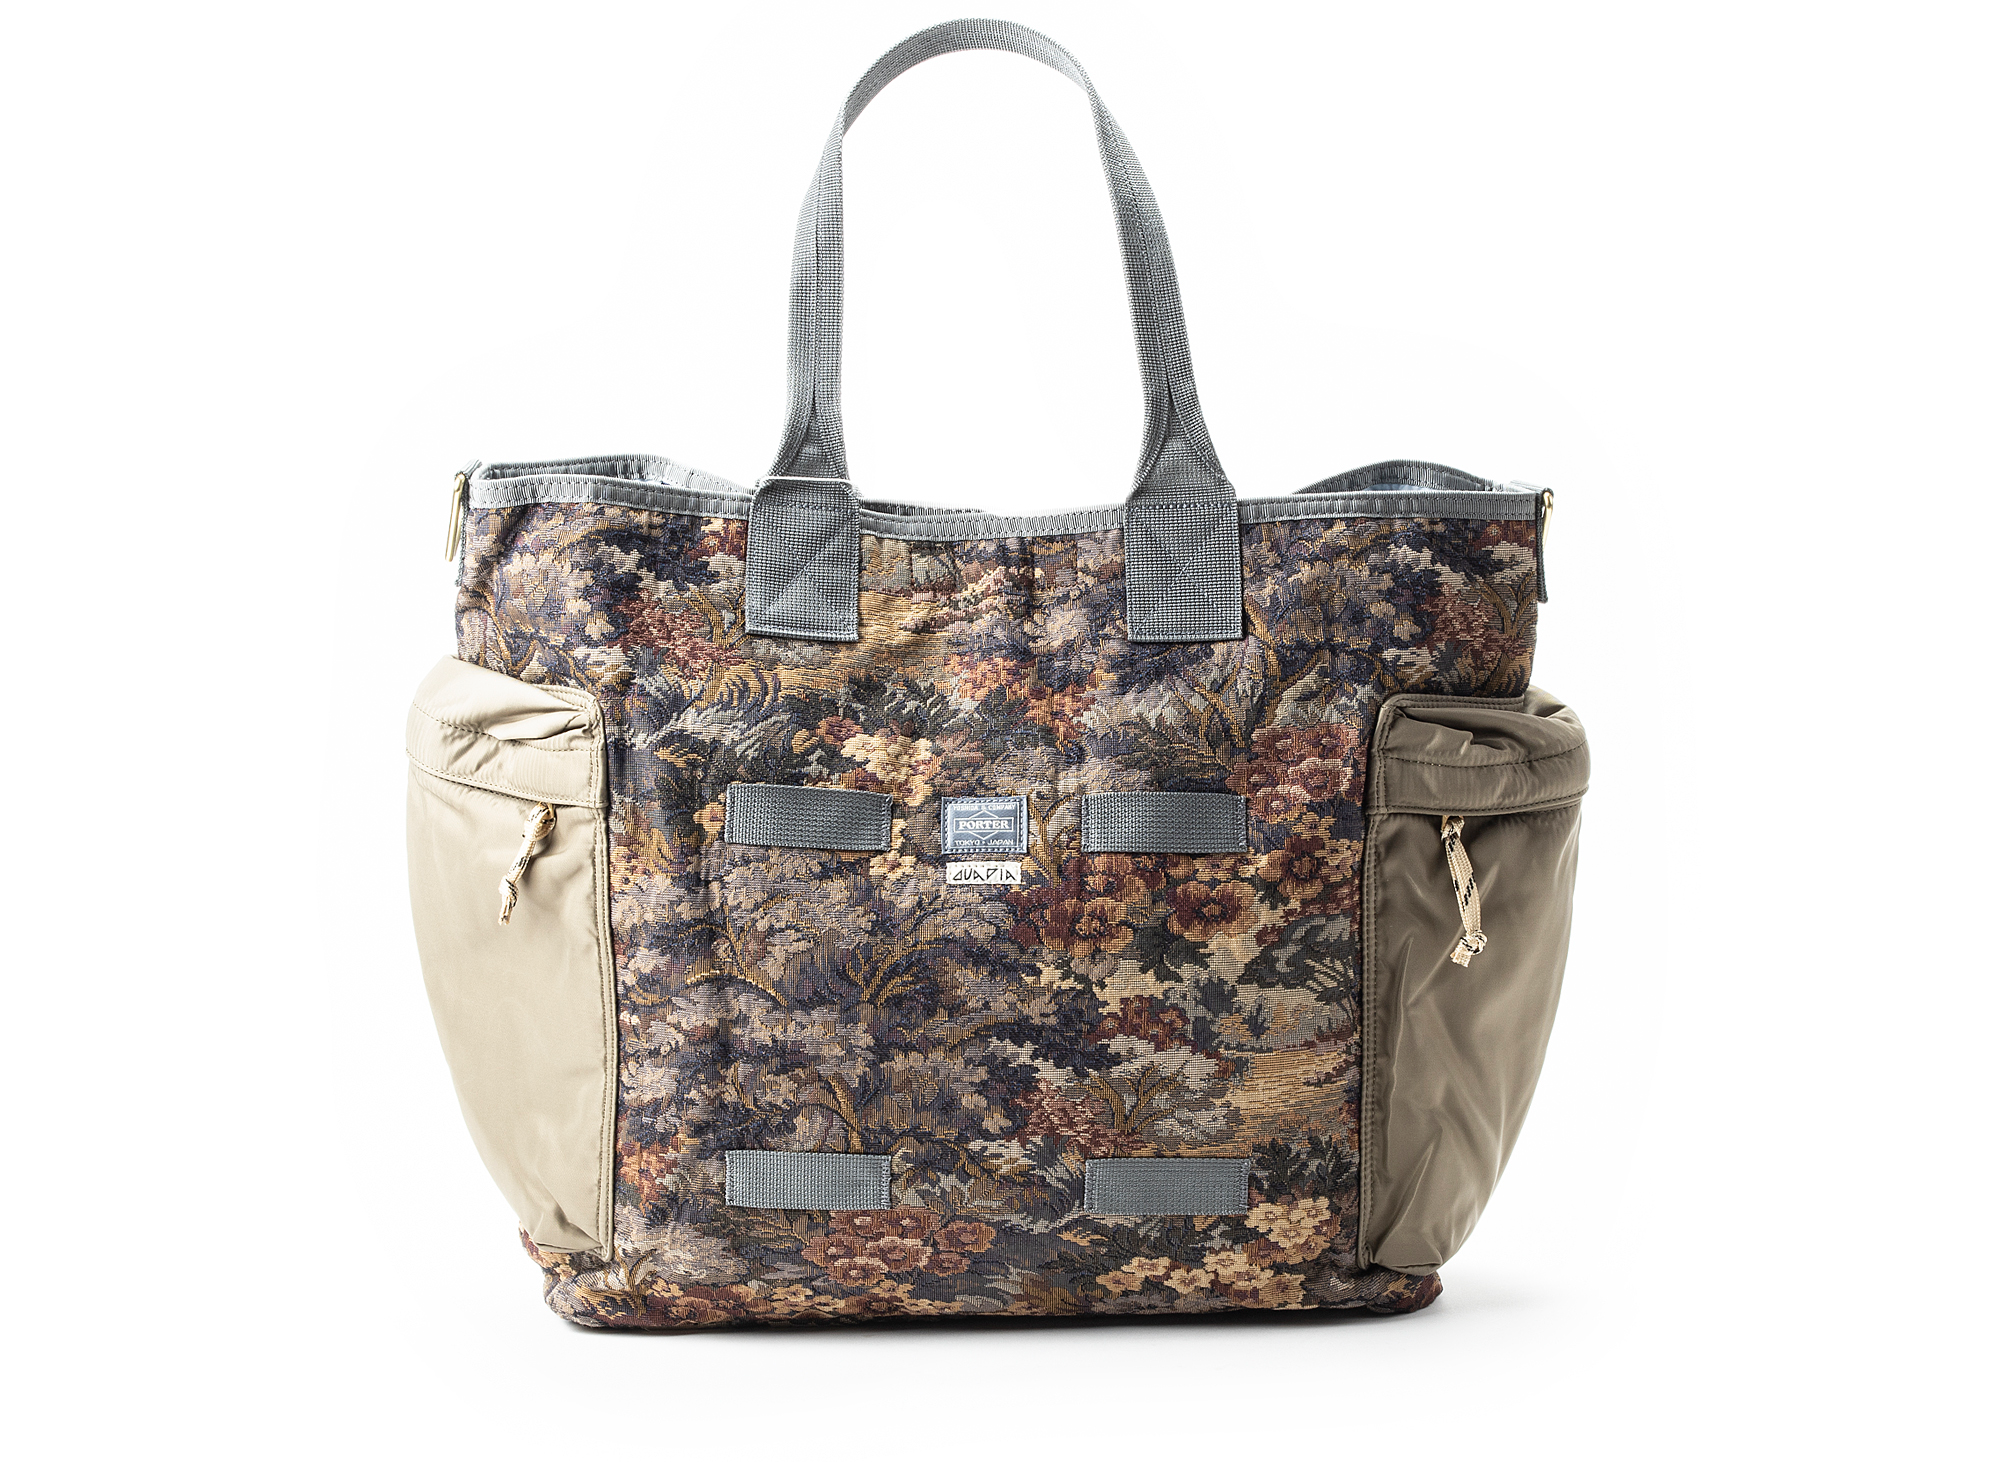 Ovadia & Sons 2-Way Tote Bag